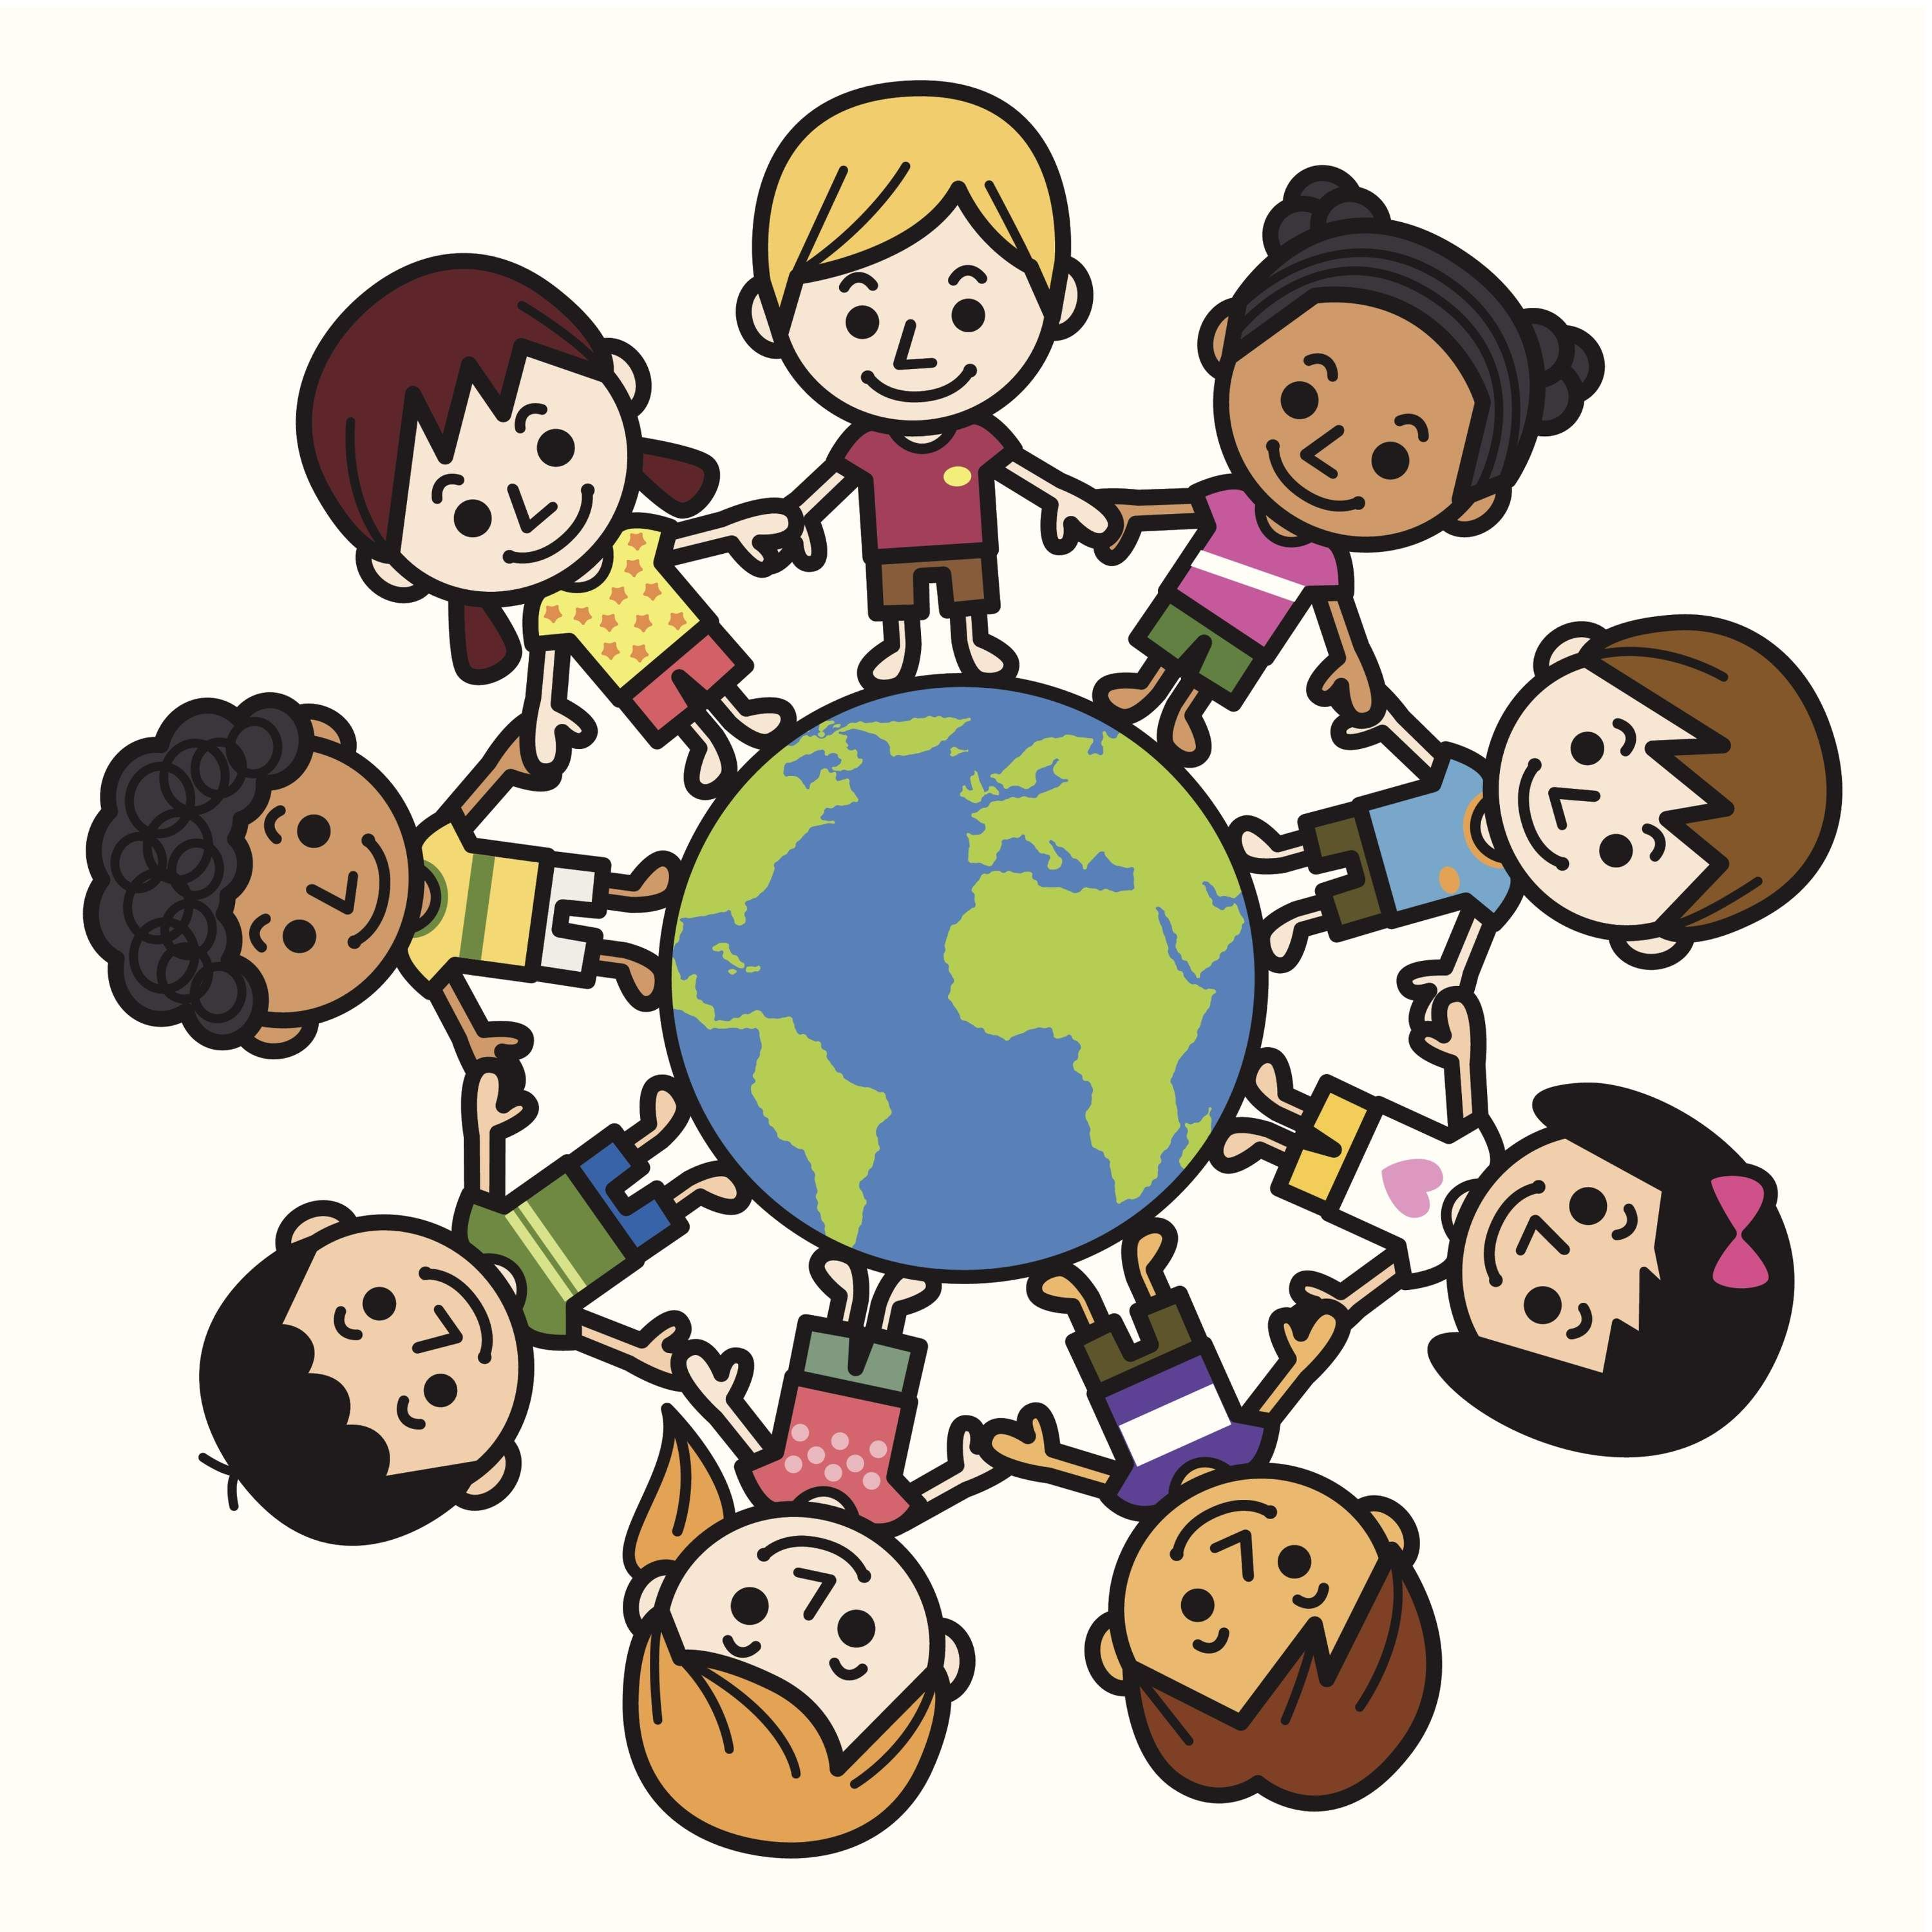 Cultural diversity clipart at getdrawings free for personal 3000x3000 multicultural cliparts free download clip art publicscrutiny Choice Image